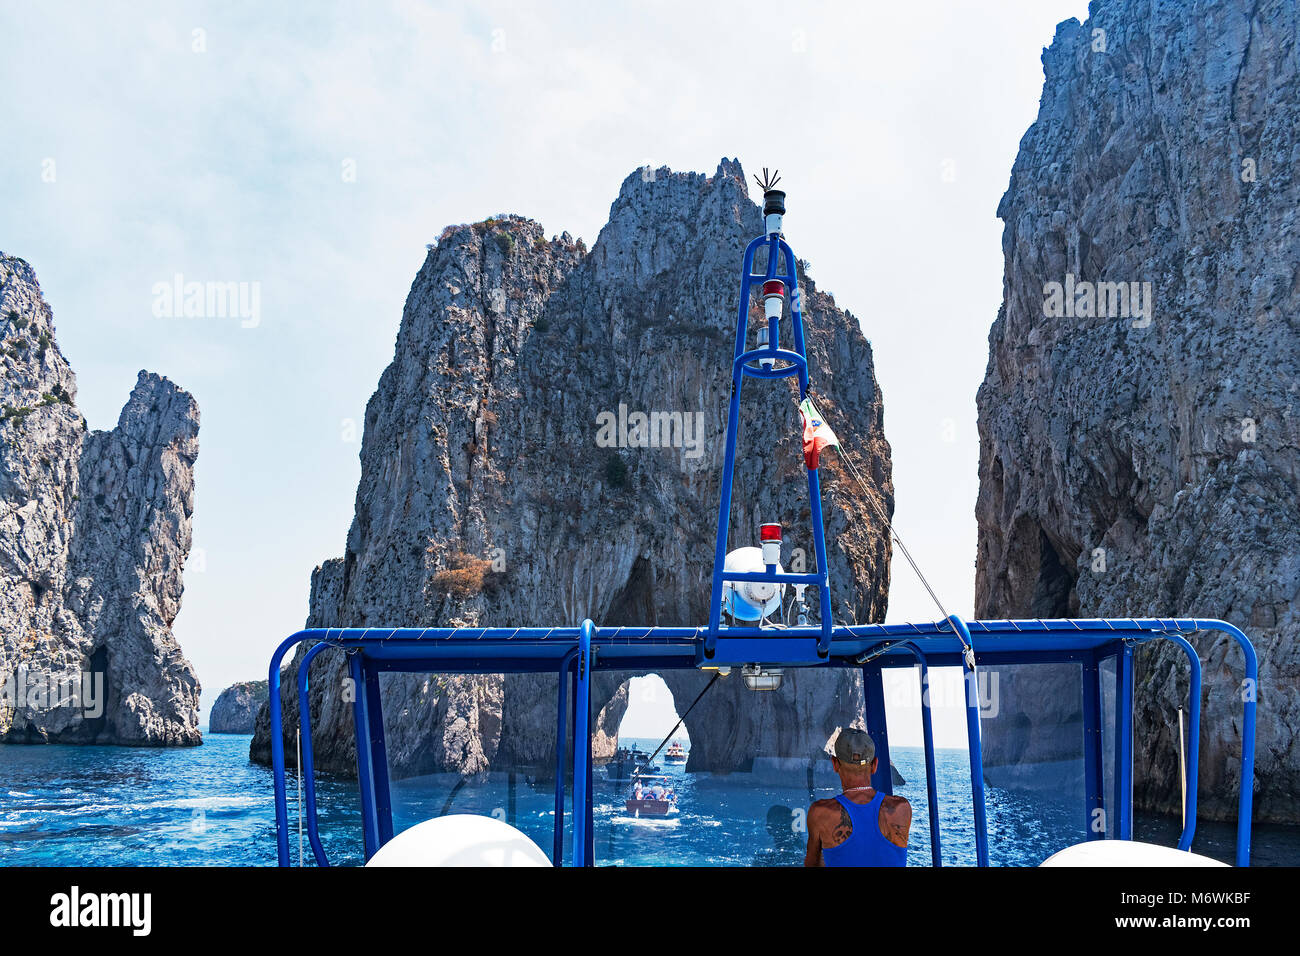 tourist boat trip approaching the famous faraglioni rocks off the island of capri in the bay of naples italy. - Stock Image